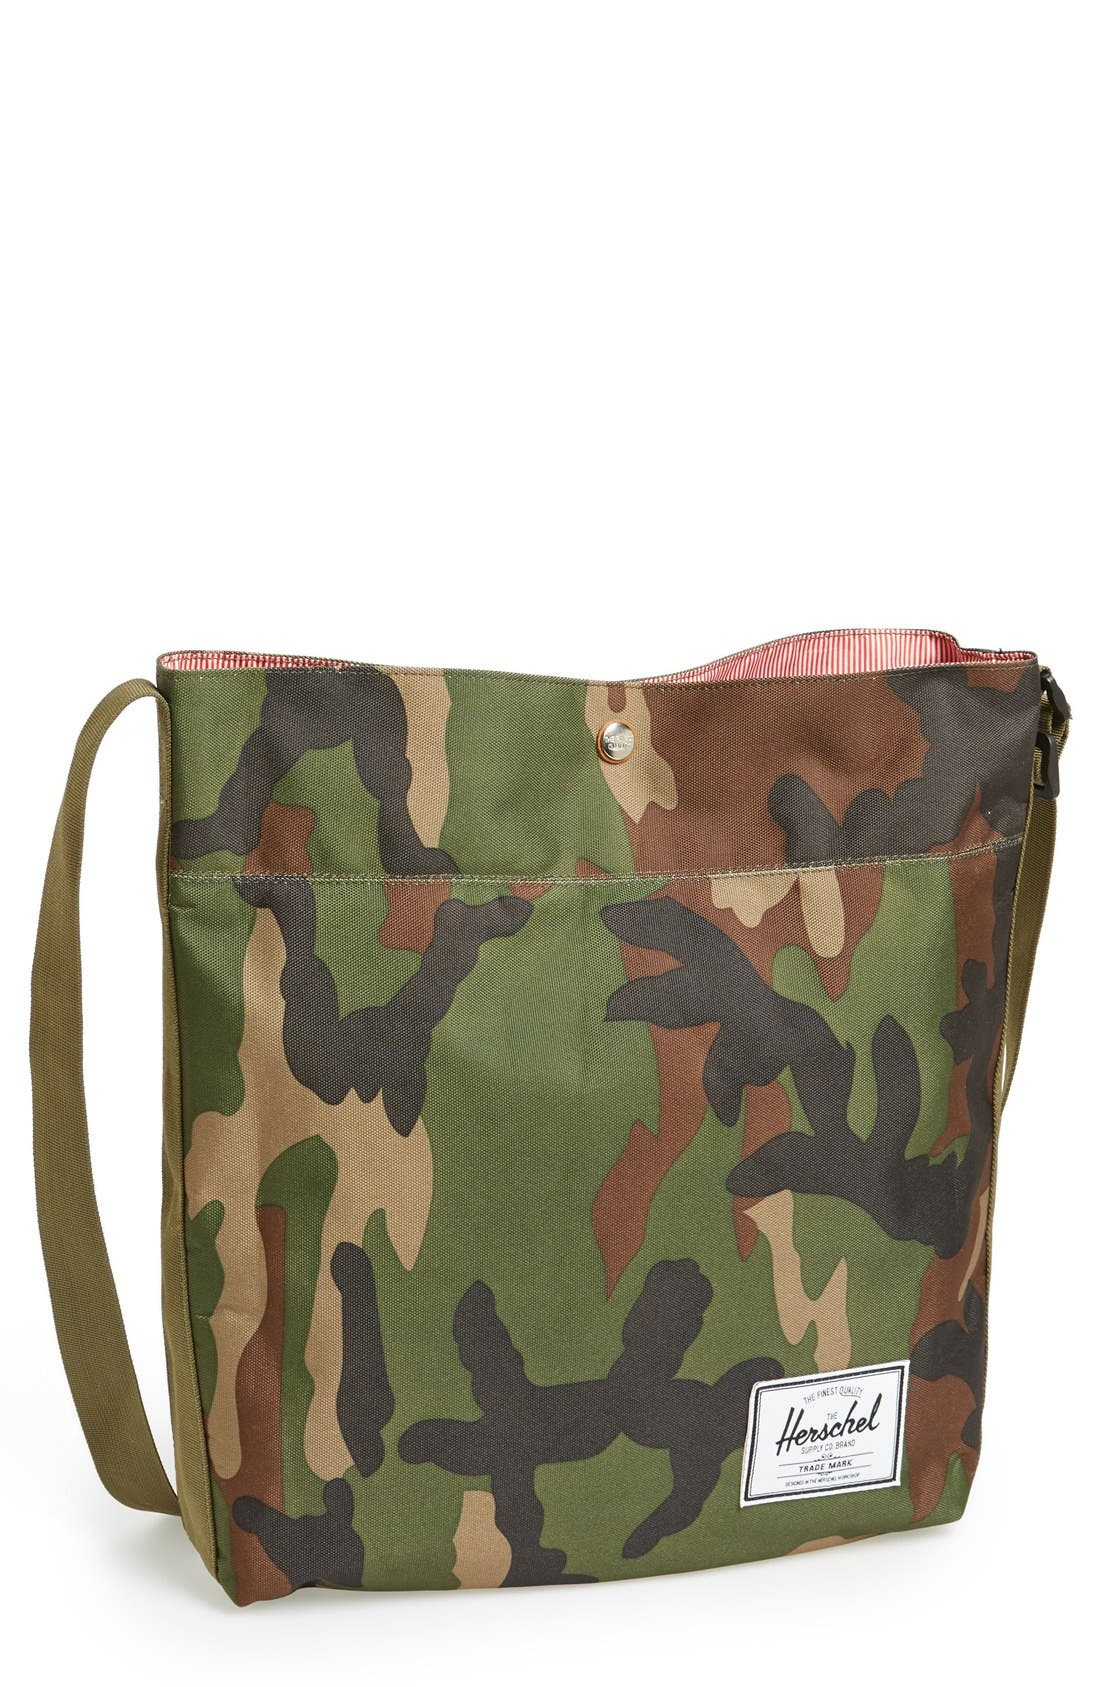 Alternate Image 1 Selected - Herschel Supply Co. 'Ottawa' Camo Tote Bag